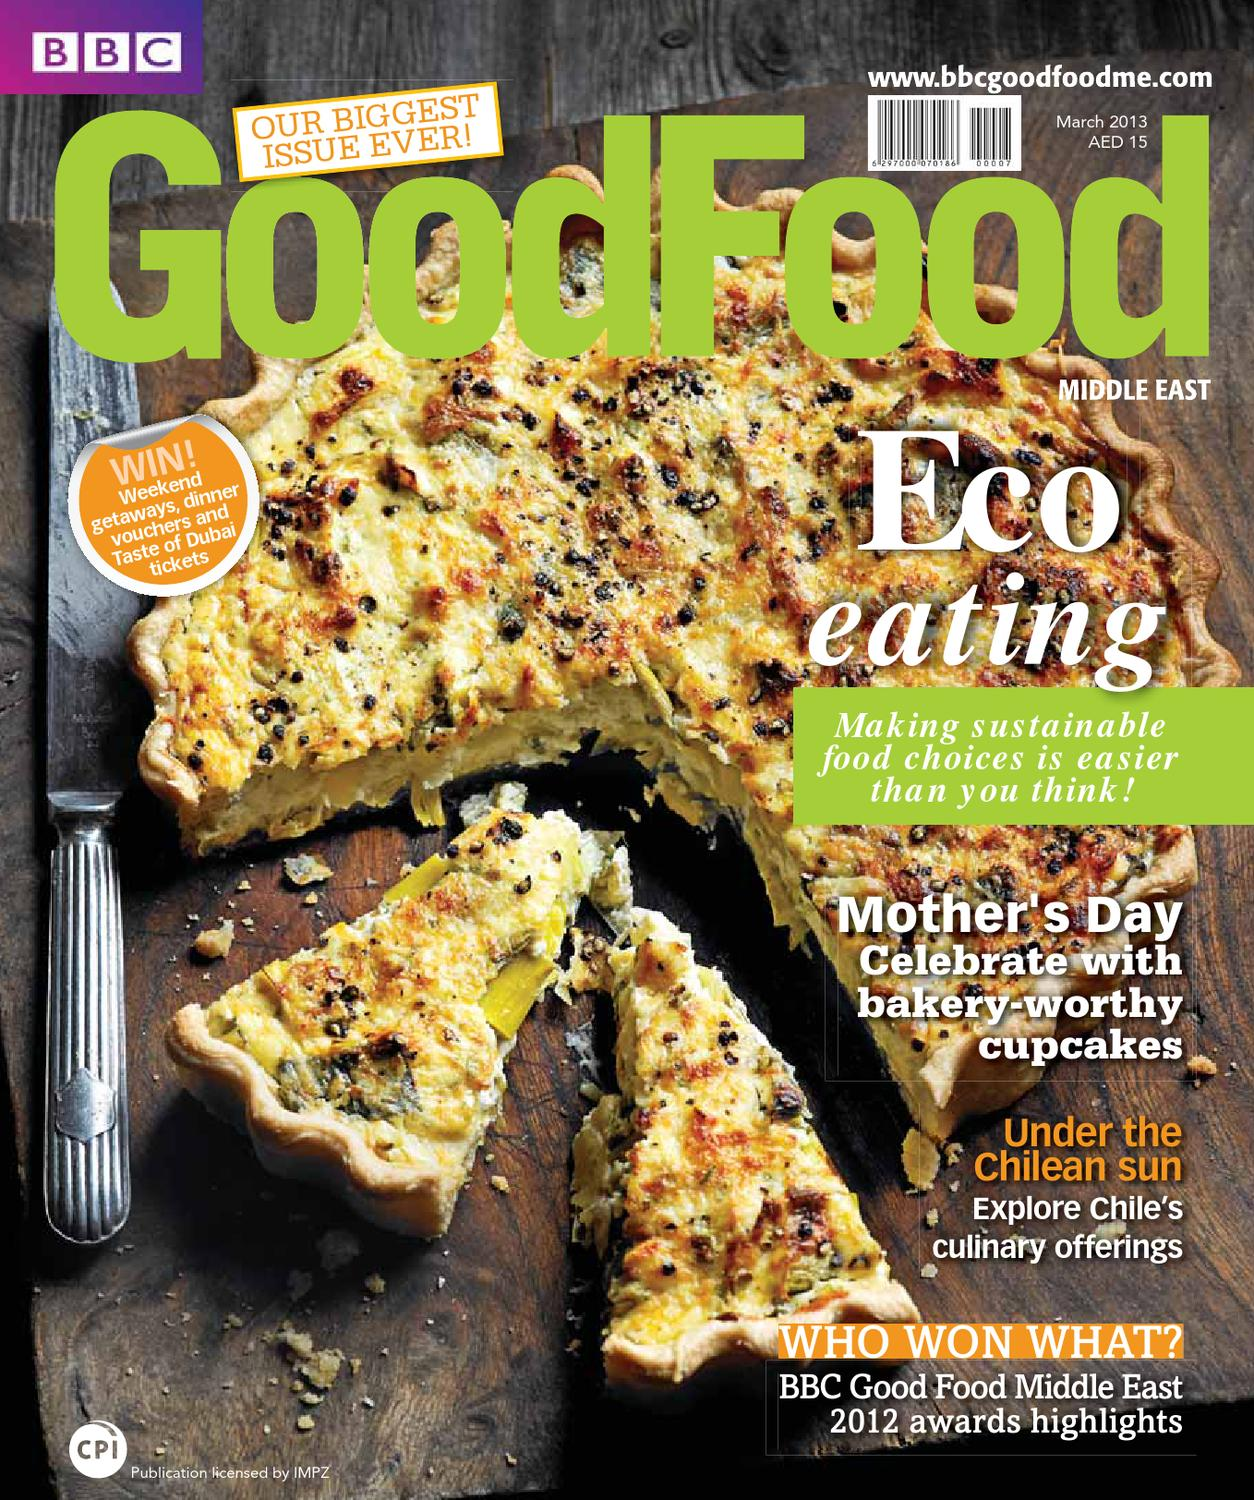 Bbc good food middle east magazine march 2013 by bbc good food me bbc good food middle east magazine march 2013 by bbc good food me issuu forumfinder Choice Image